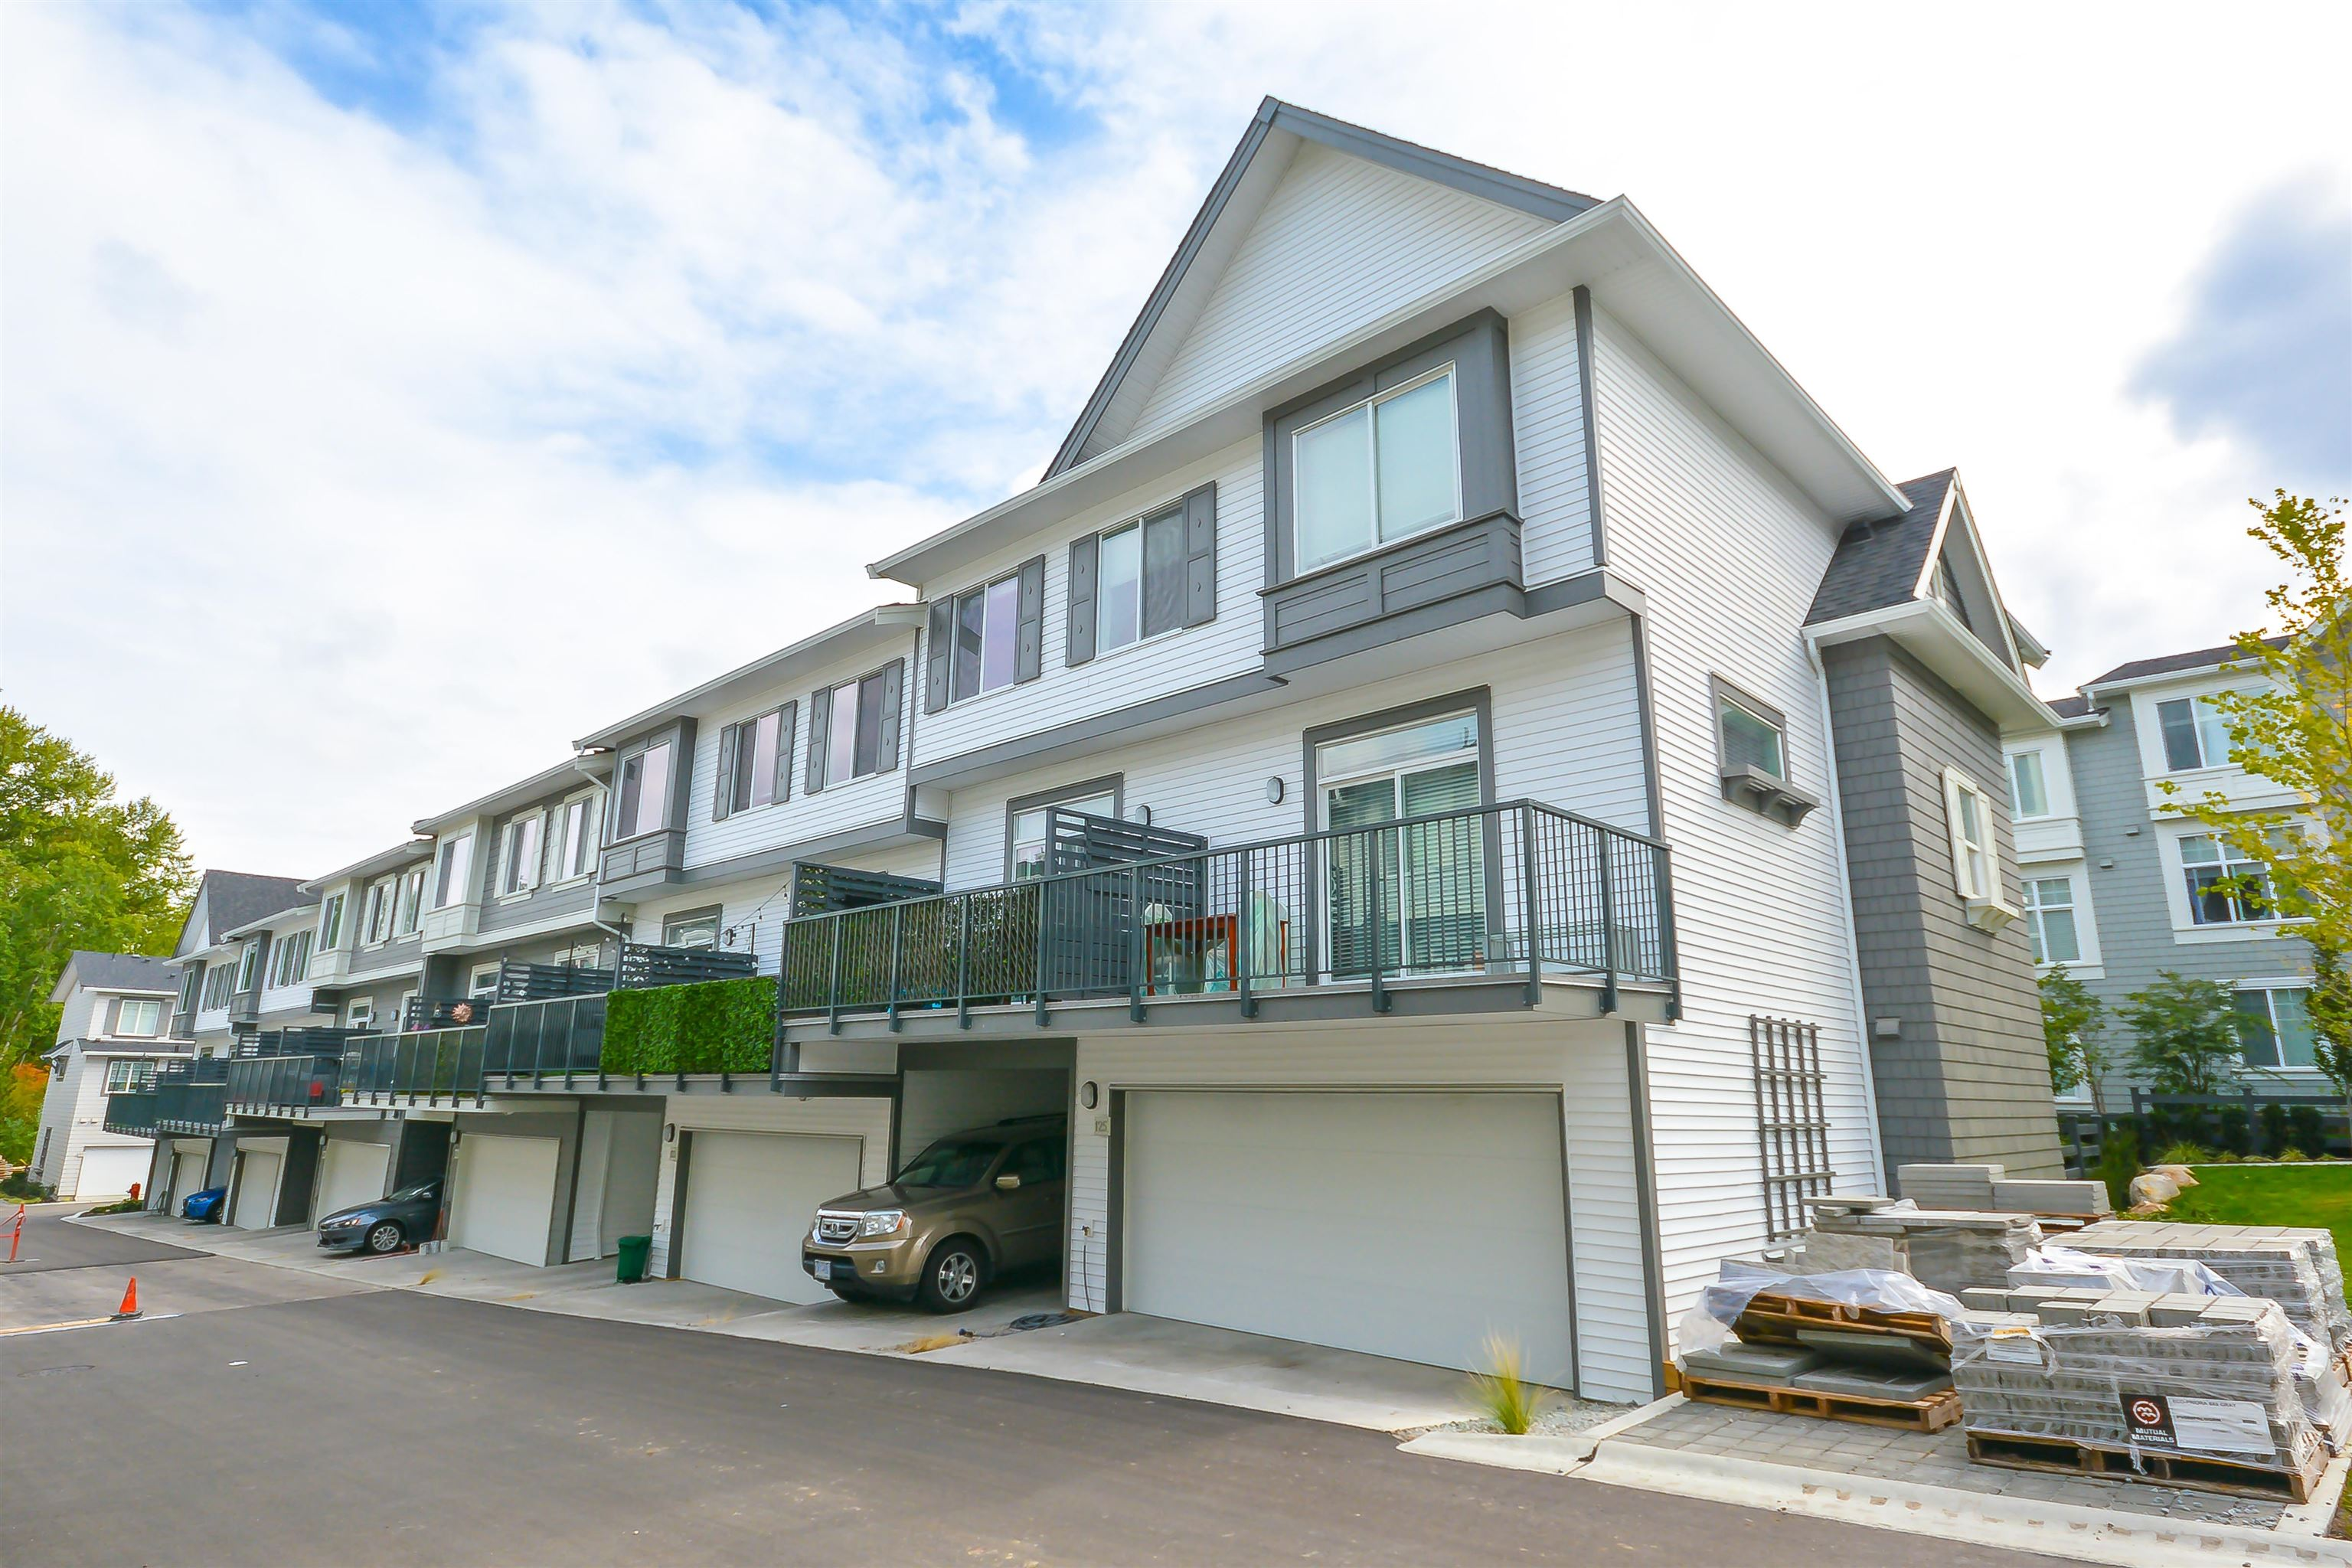 124 8168 136A STREET - Bear Creek Green Timbers Townhouse for sale, 4 Bedrooms (R2620266) - #1